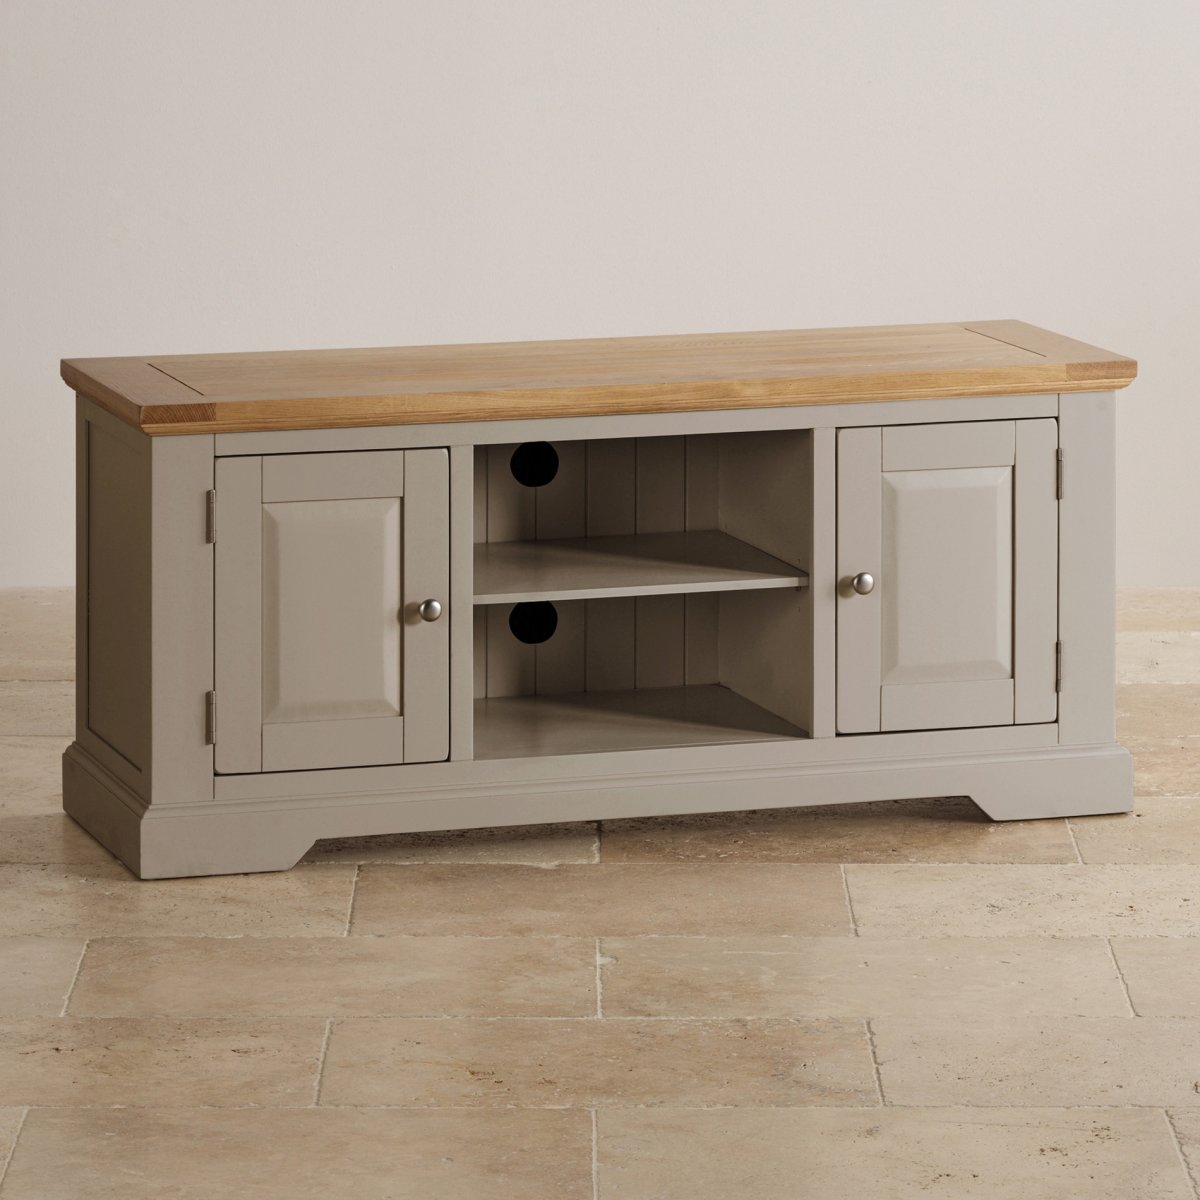 St ives grey tv unit with brushed oak top oak furniture land - Clearance kitchen cabinets or units ...